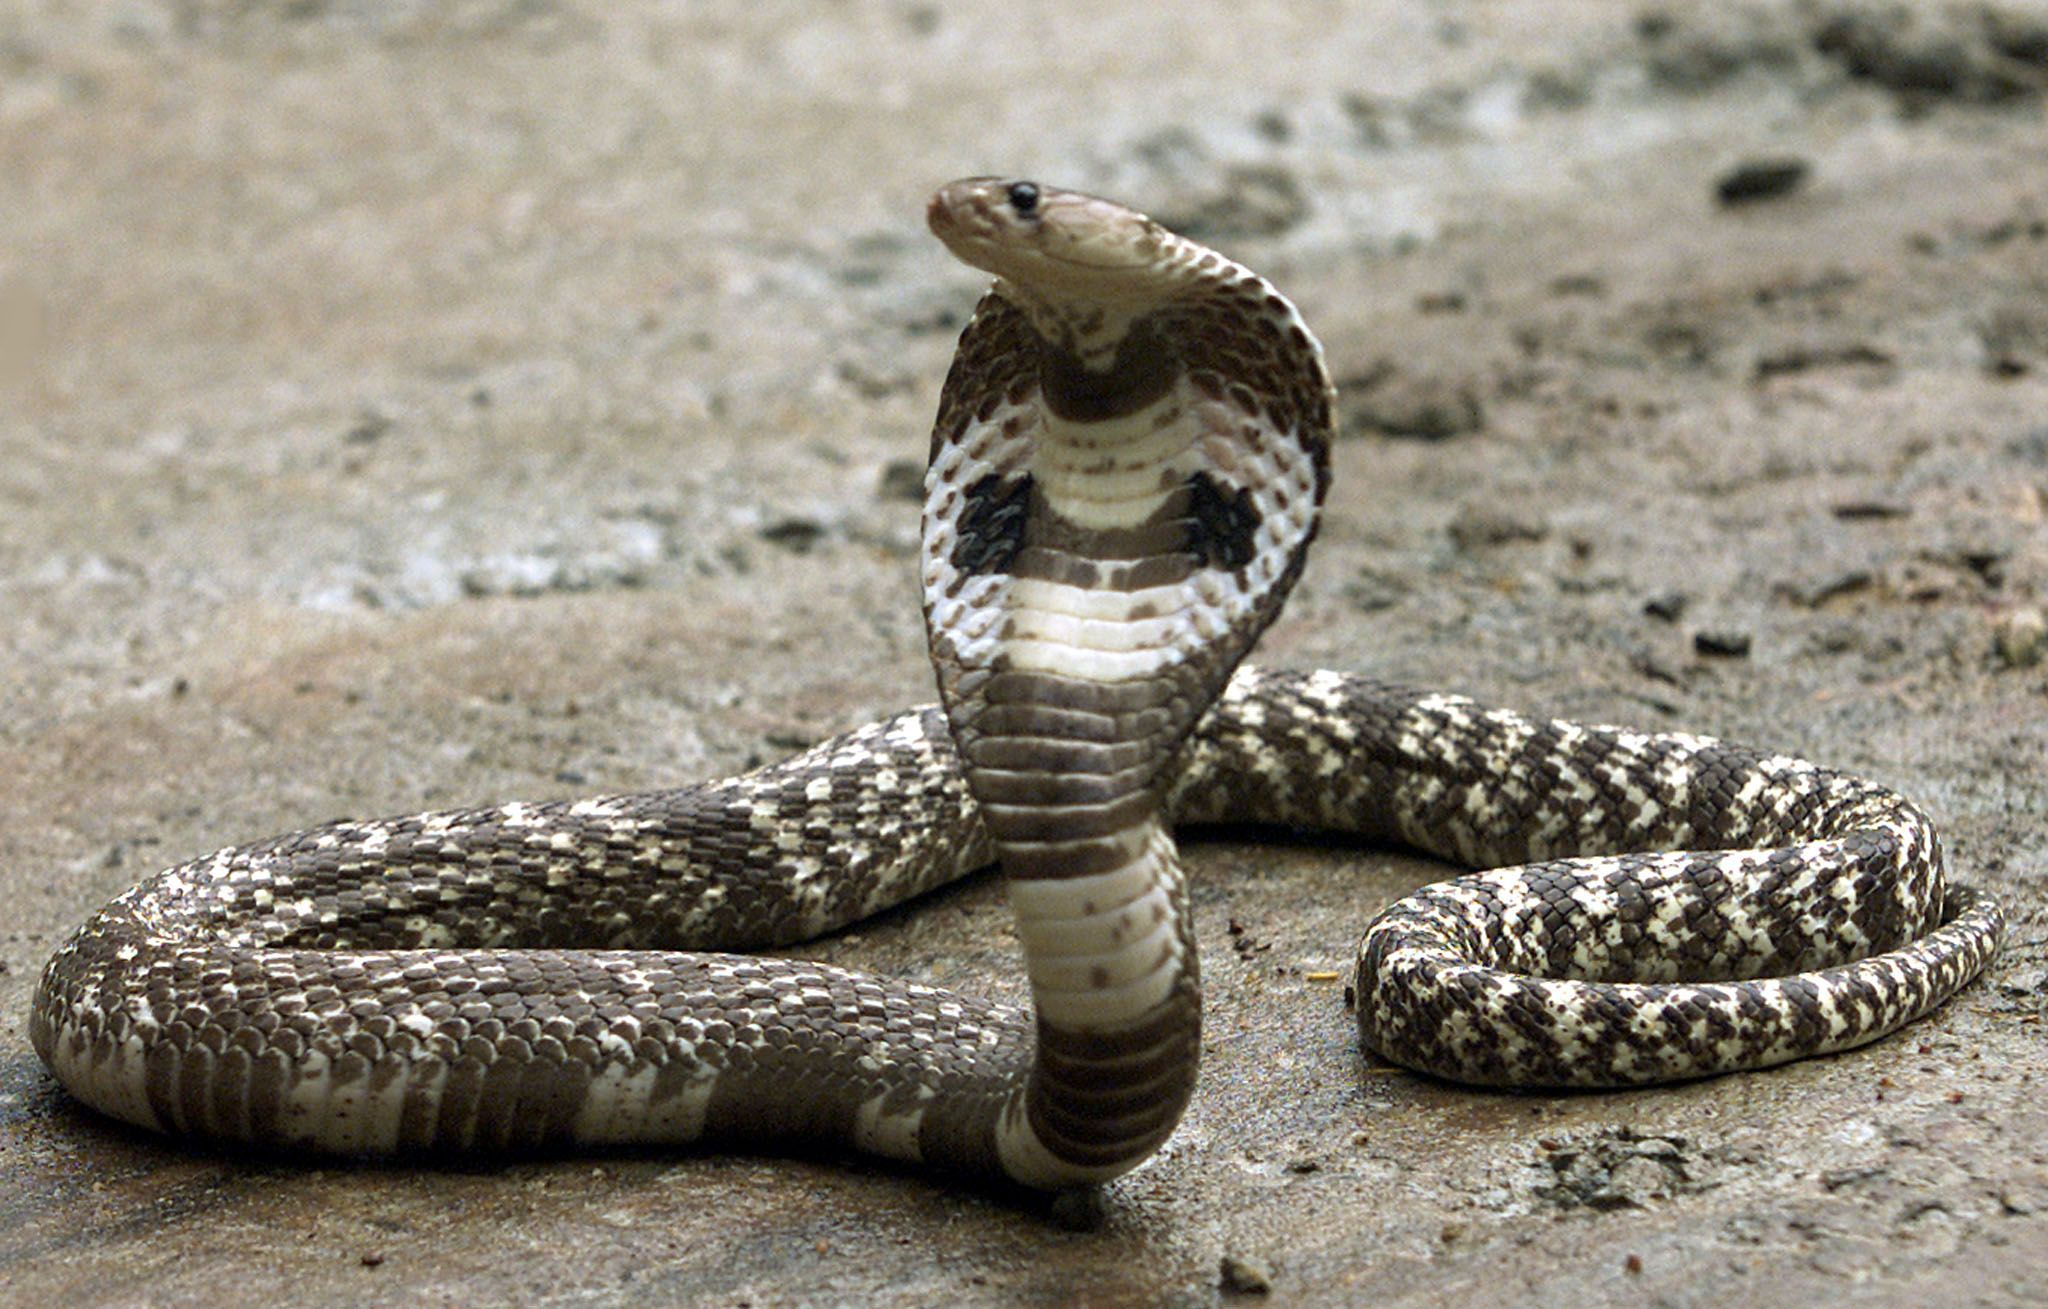 King Cobra Snake Photos: 8-Foot King Cobra Found In Orlando After Over A Month On